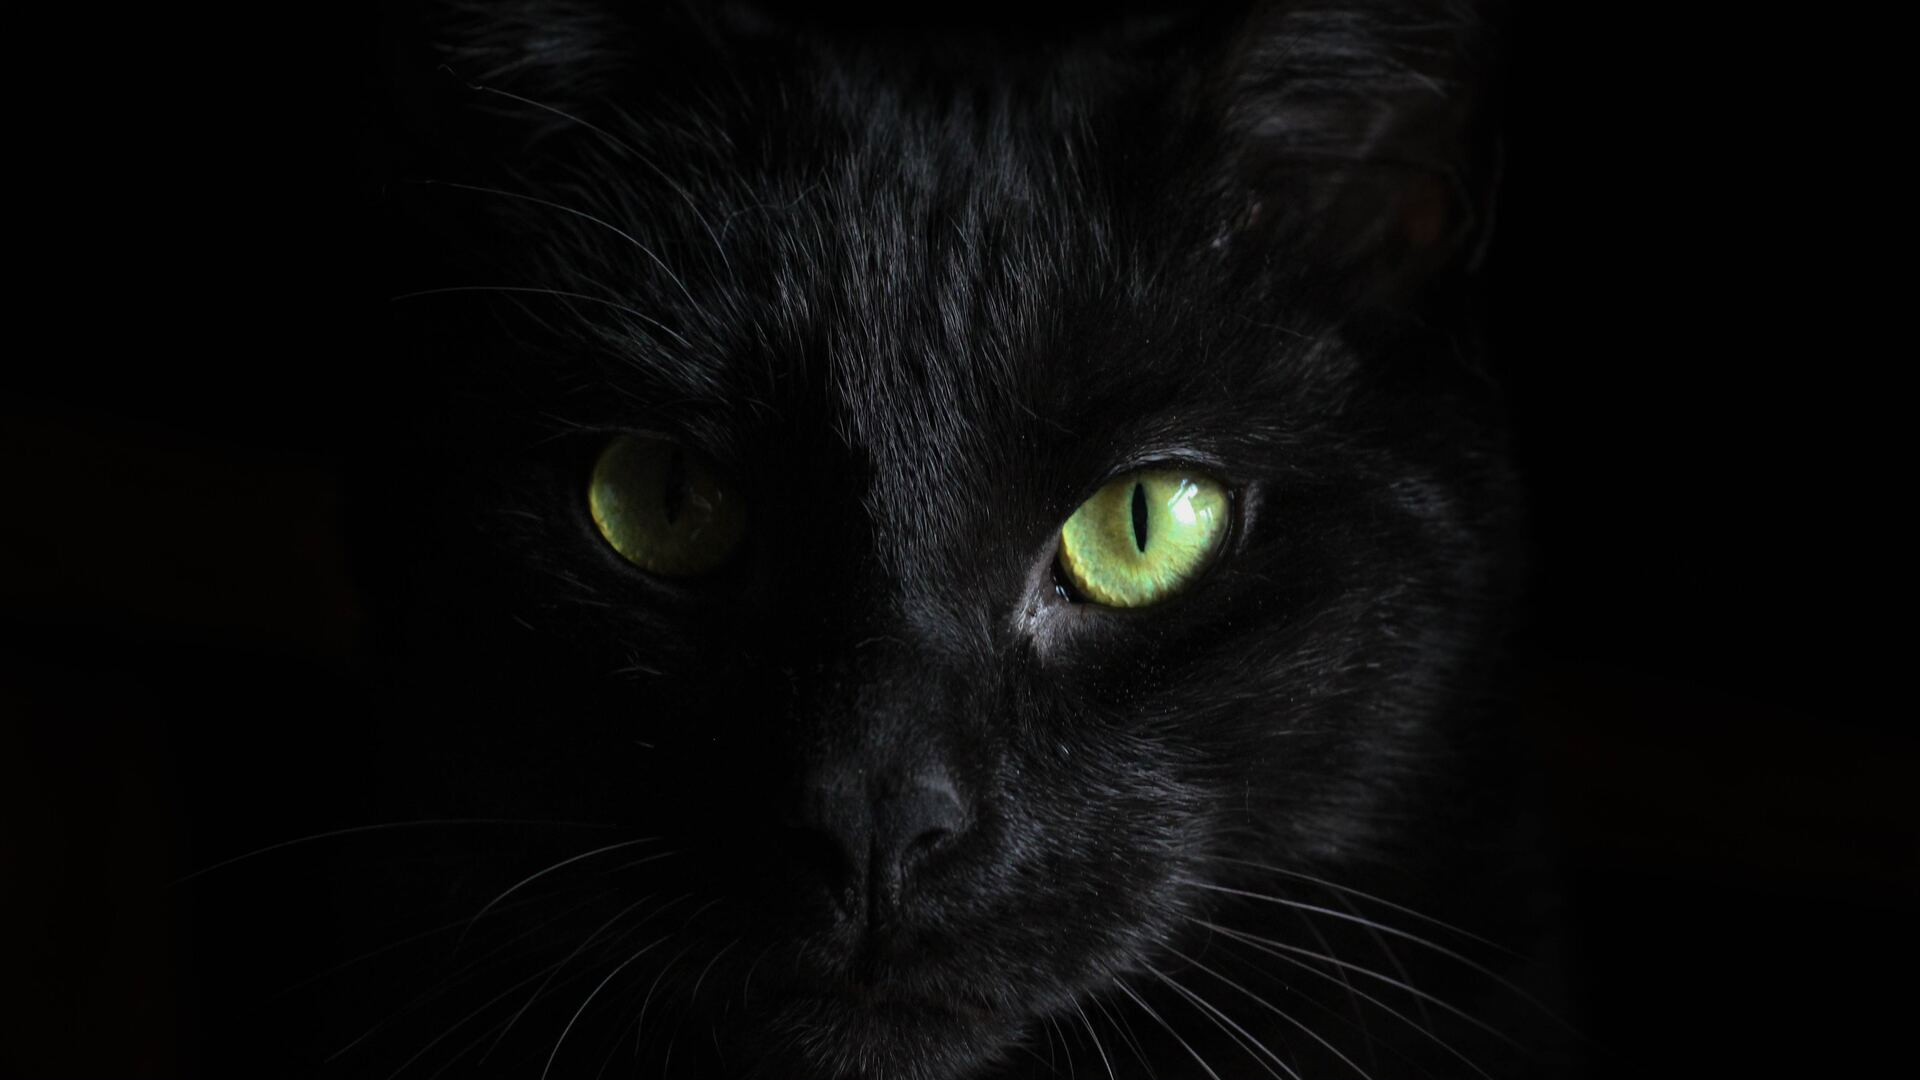 1920x1080 Black Cat Green Eyes Laptop Full Hd 1080p Hd 4k Wallpapers Images Backgrounds Photos And Pictures